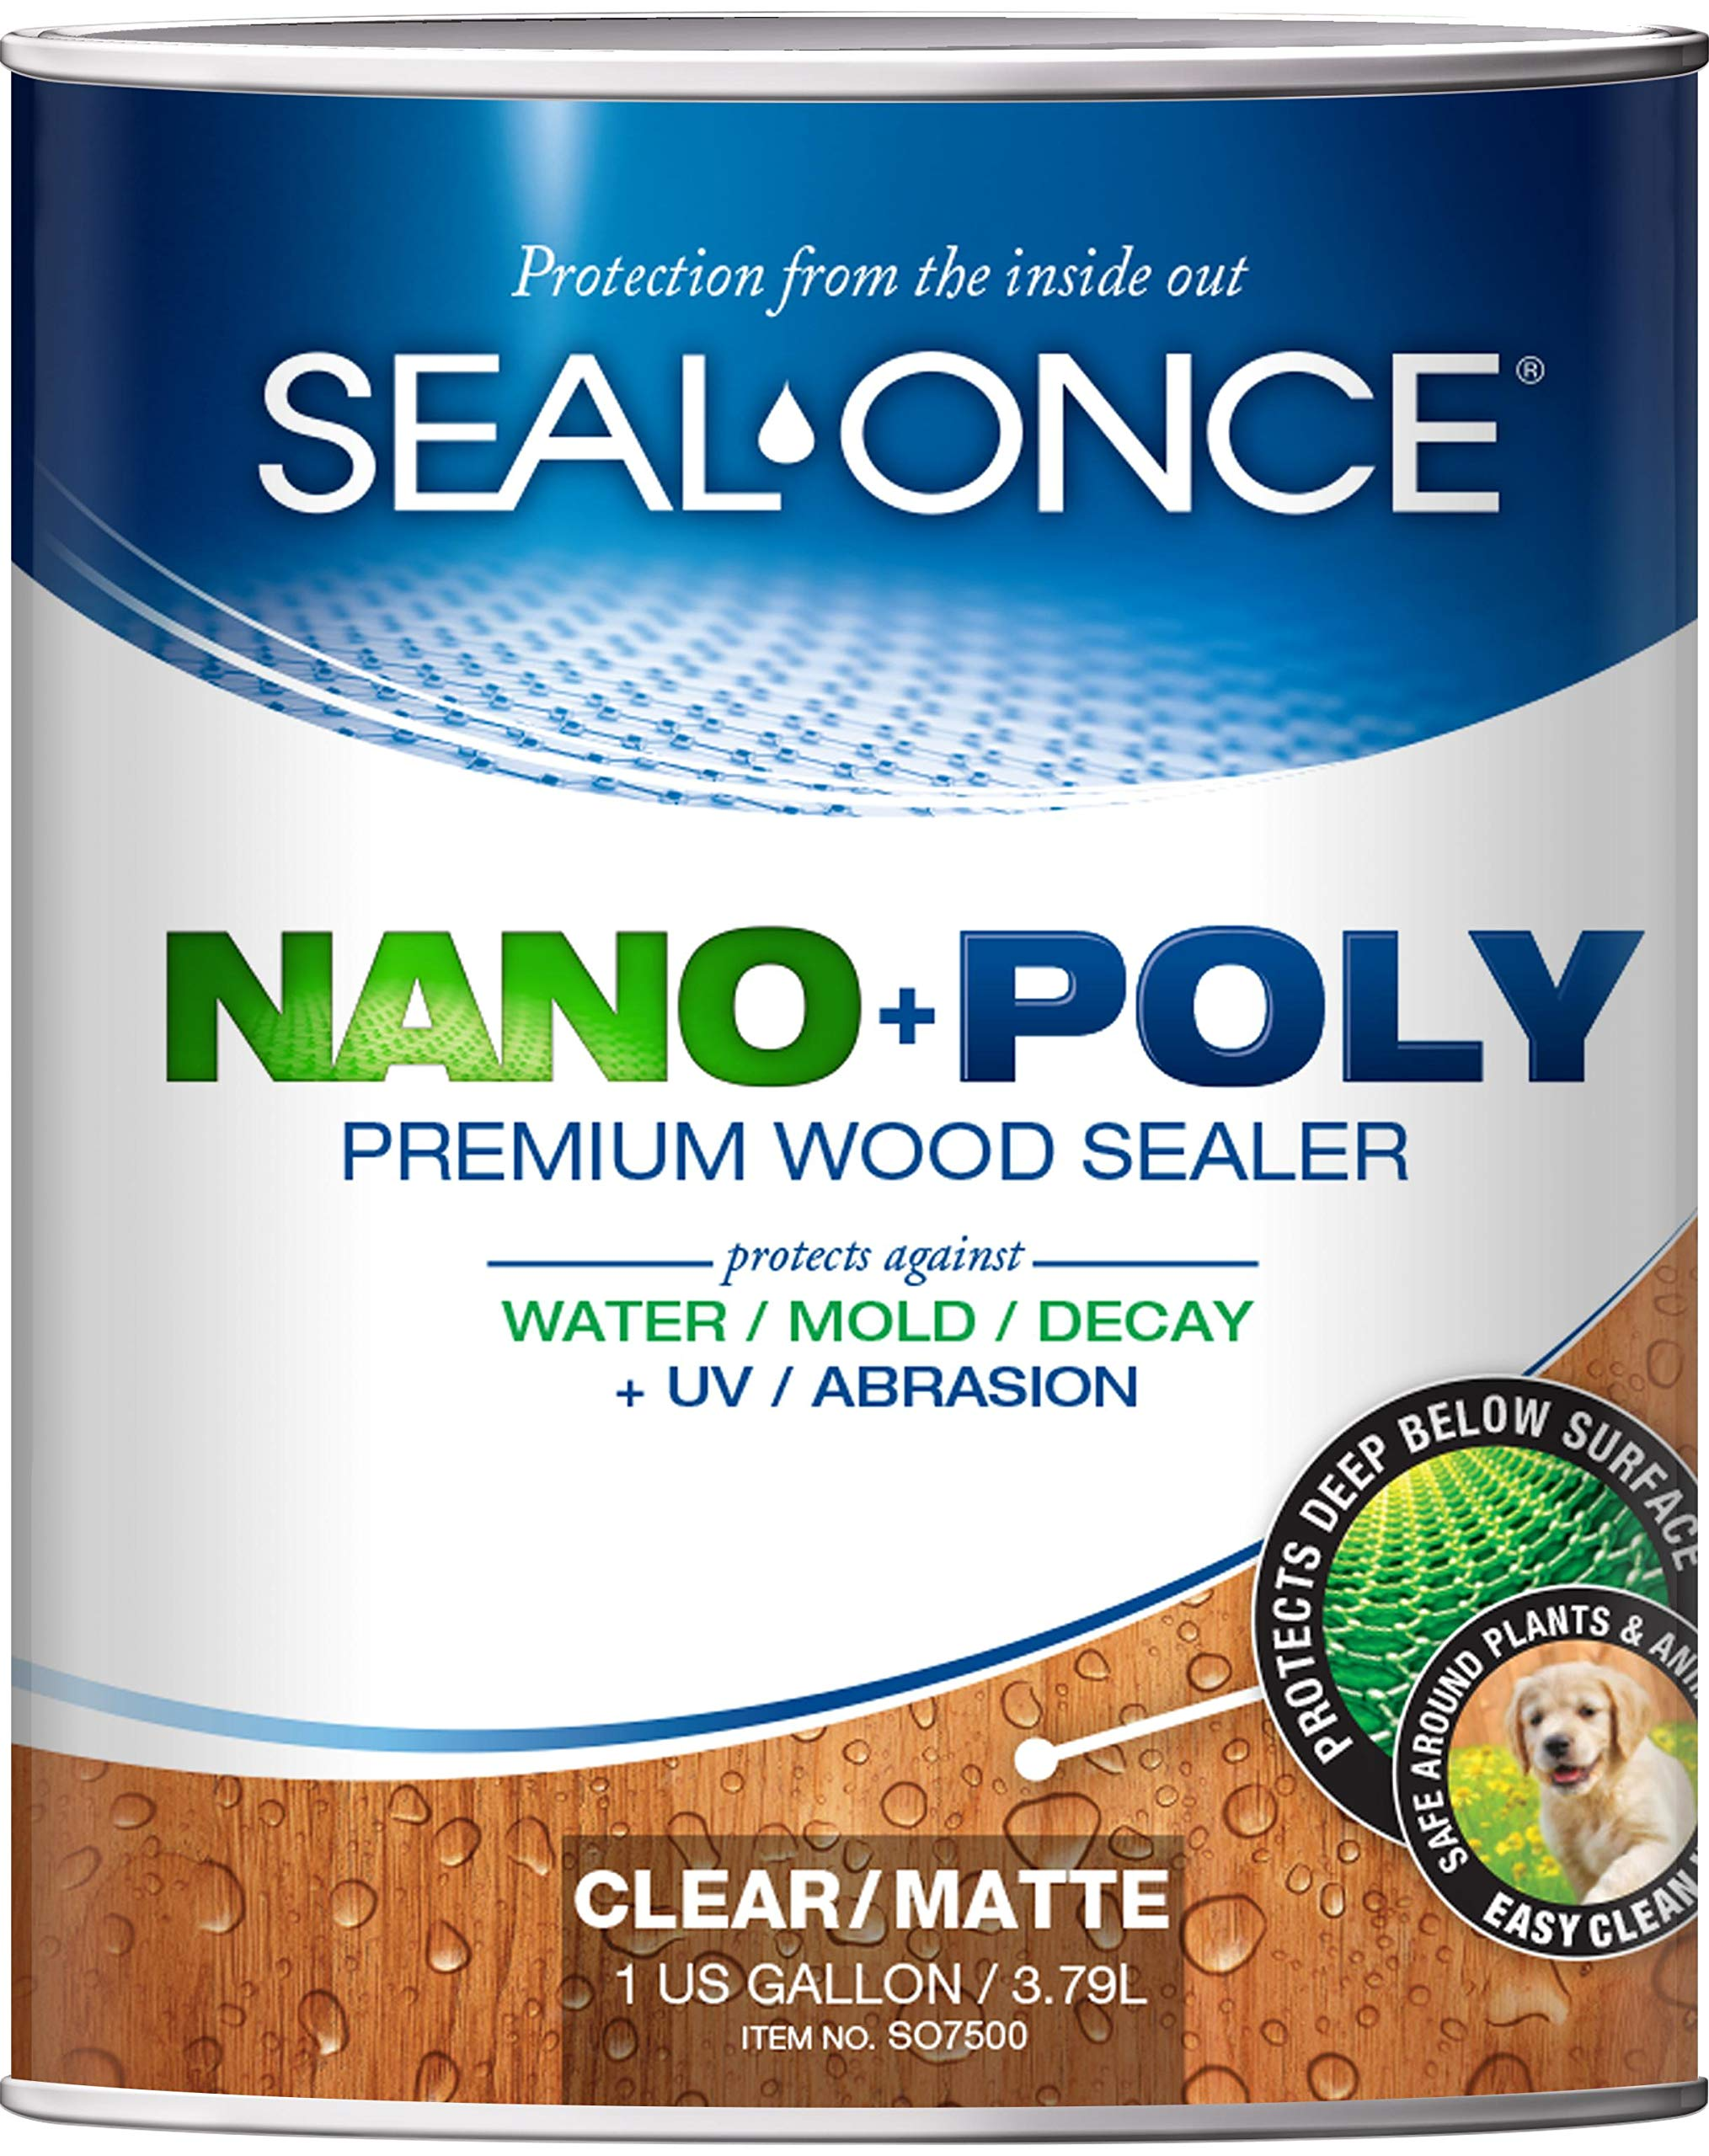 SEAL-ONCE NANO+POLY Penetrating Wood Sealer with Polyurethane - 1 Gallon. Water-based, Low-VOC, waterproofer & stain for decks, fences & log homes.